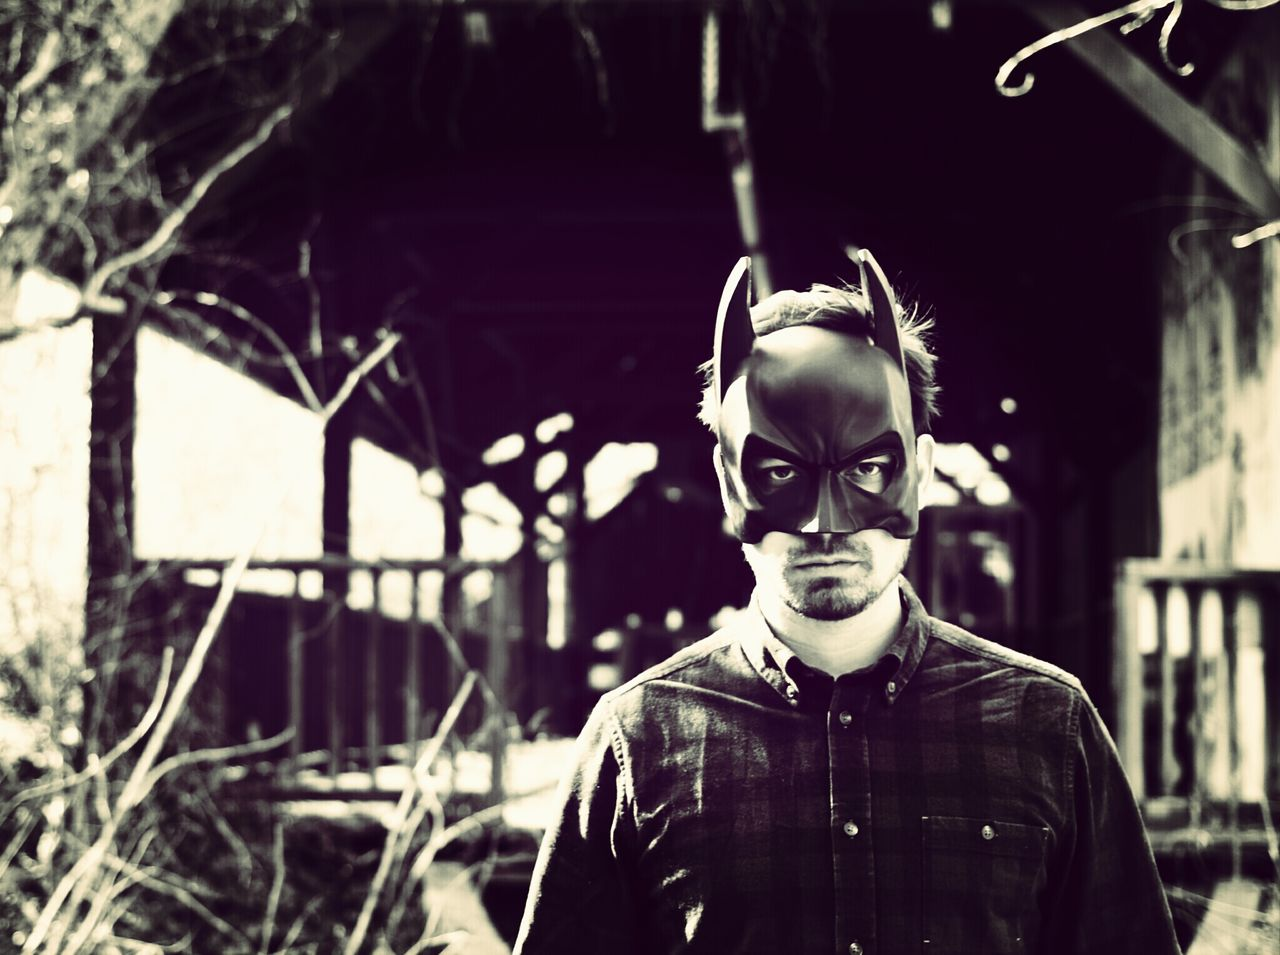 Portrait of man in batman mask